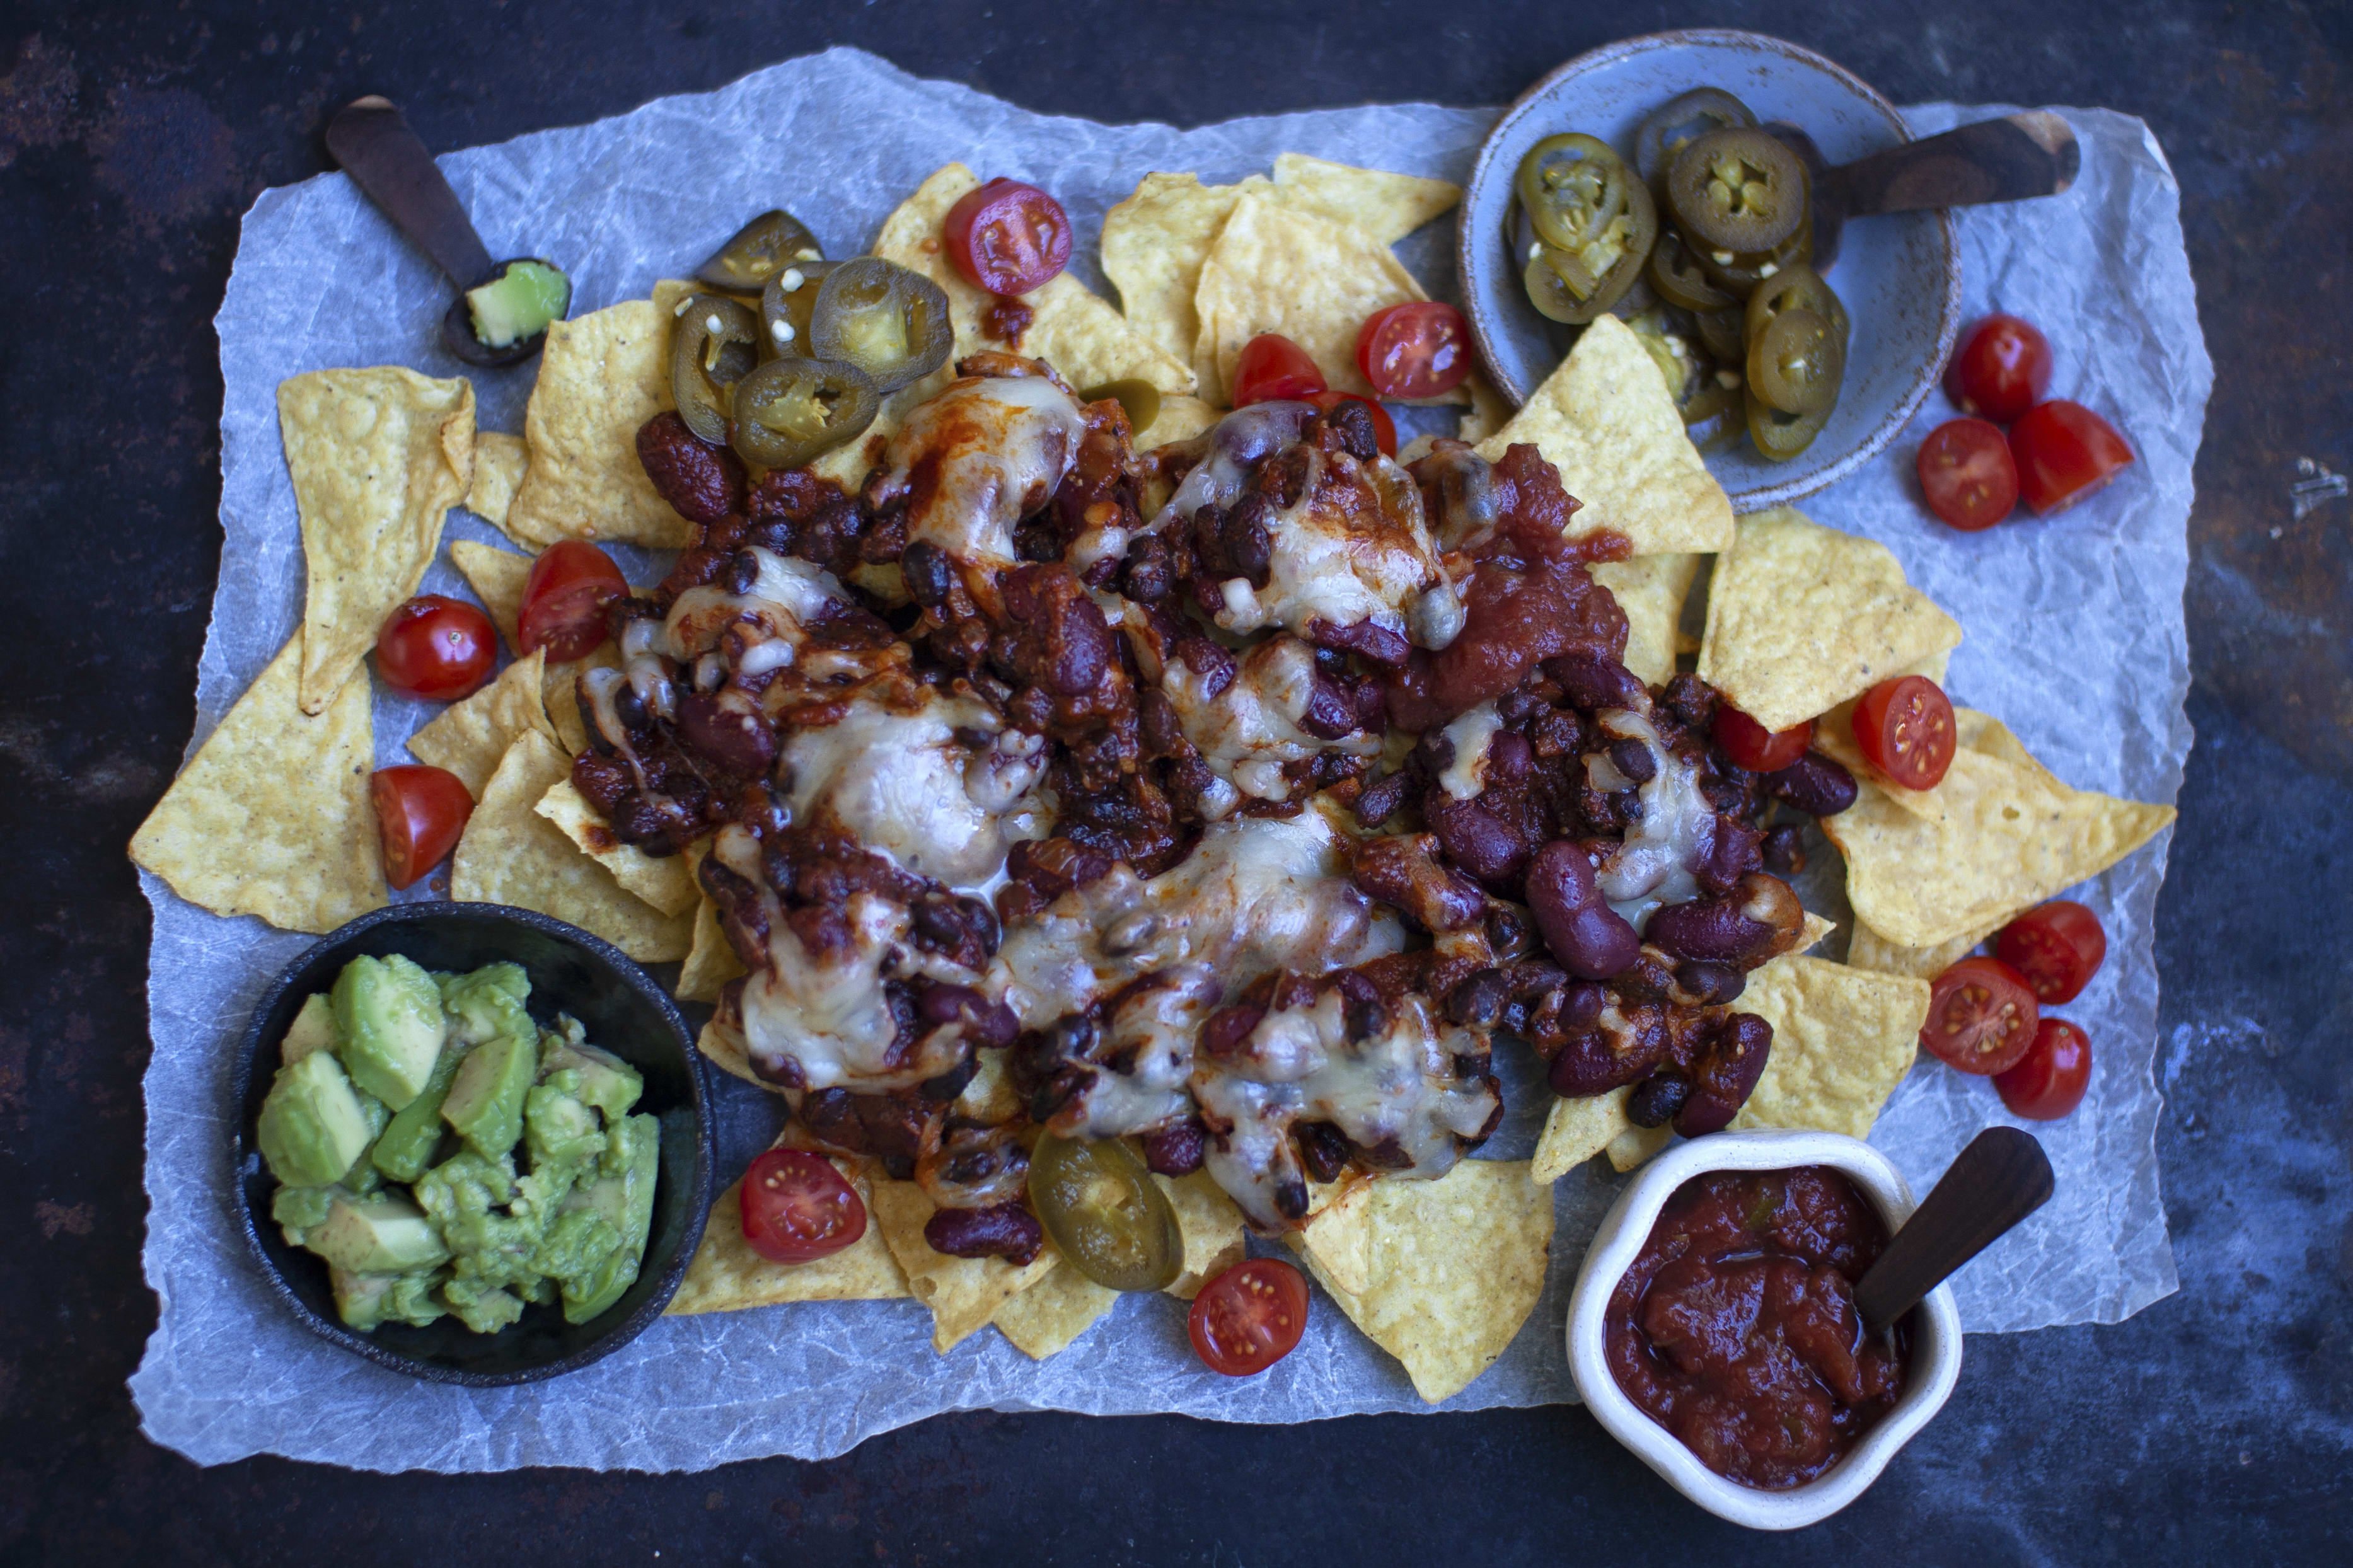 Loaded Nachos with Beans, Cheese and Avocado